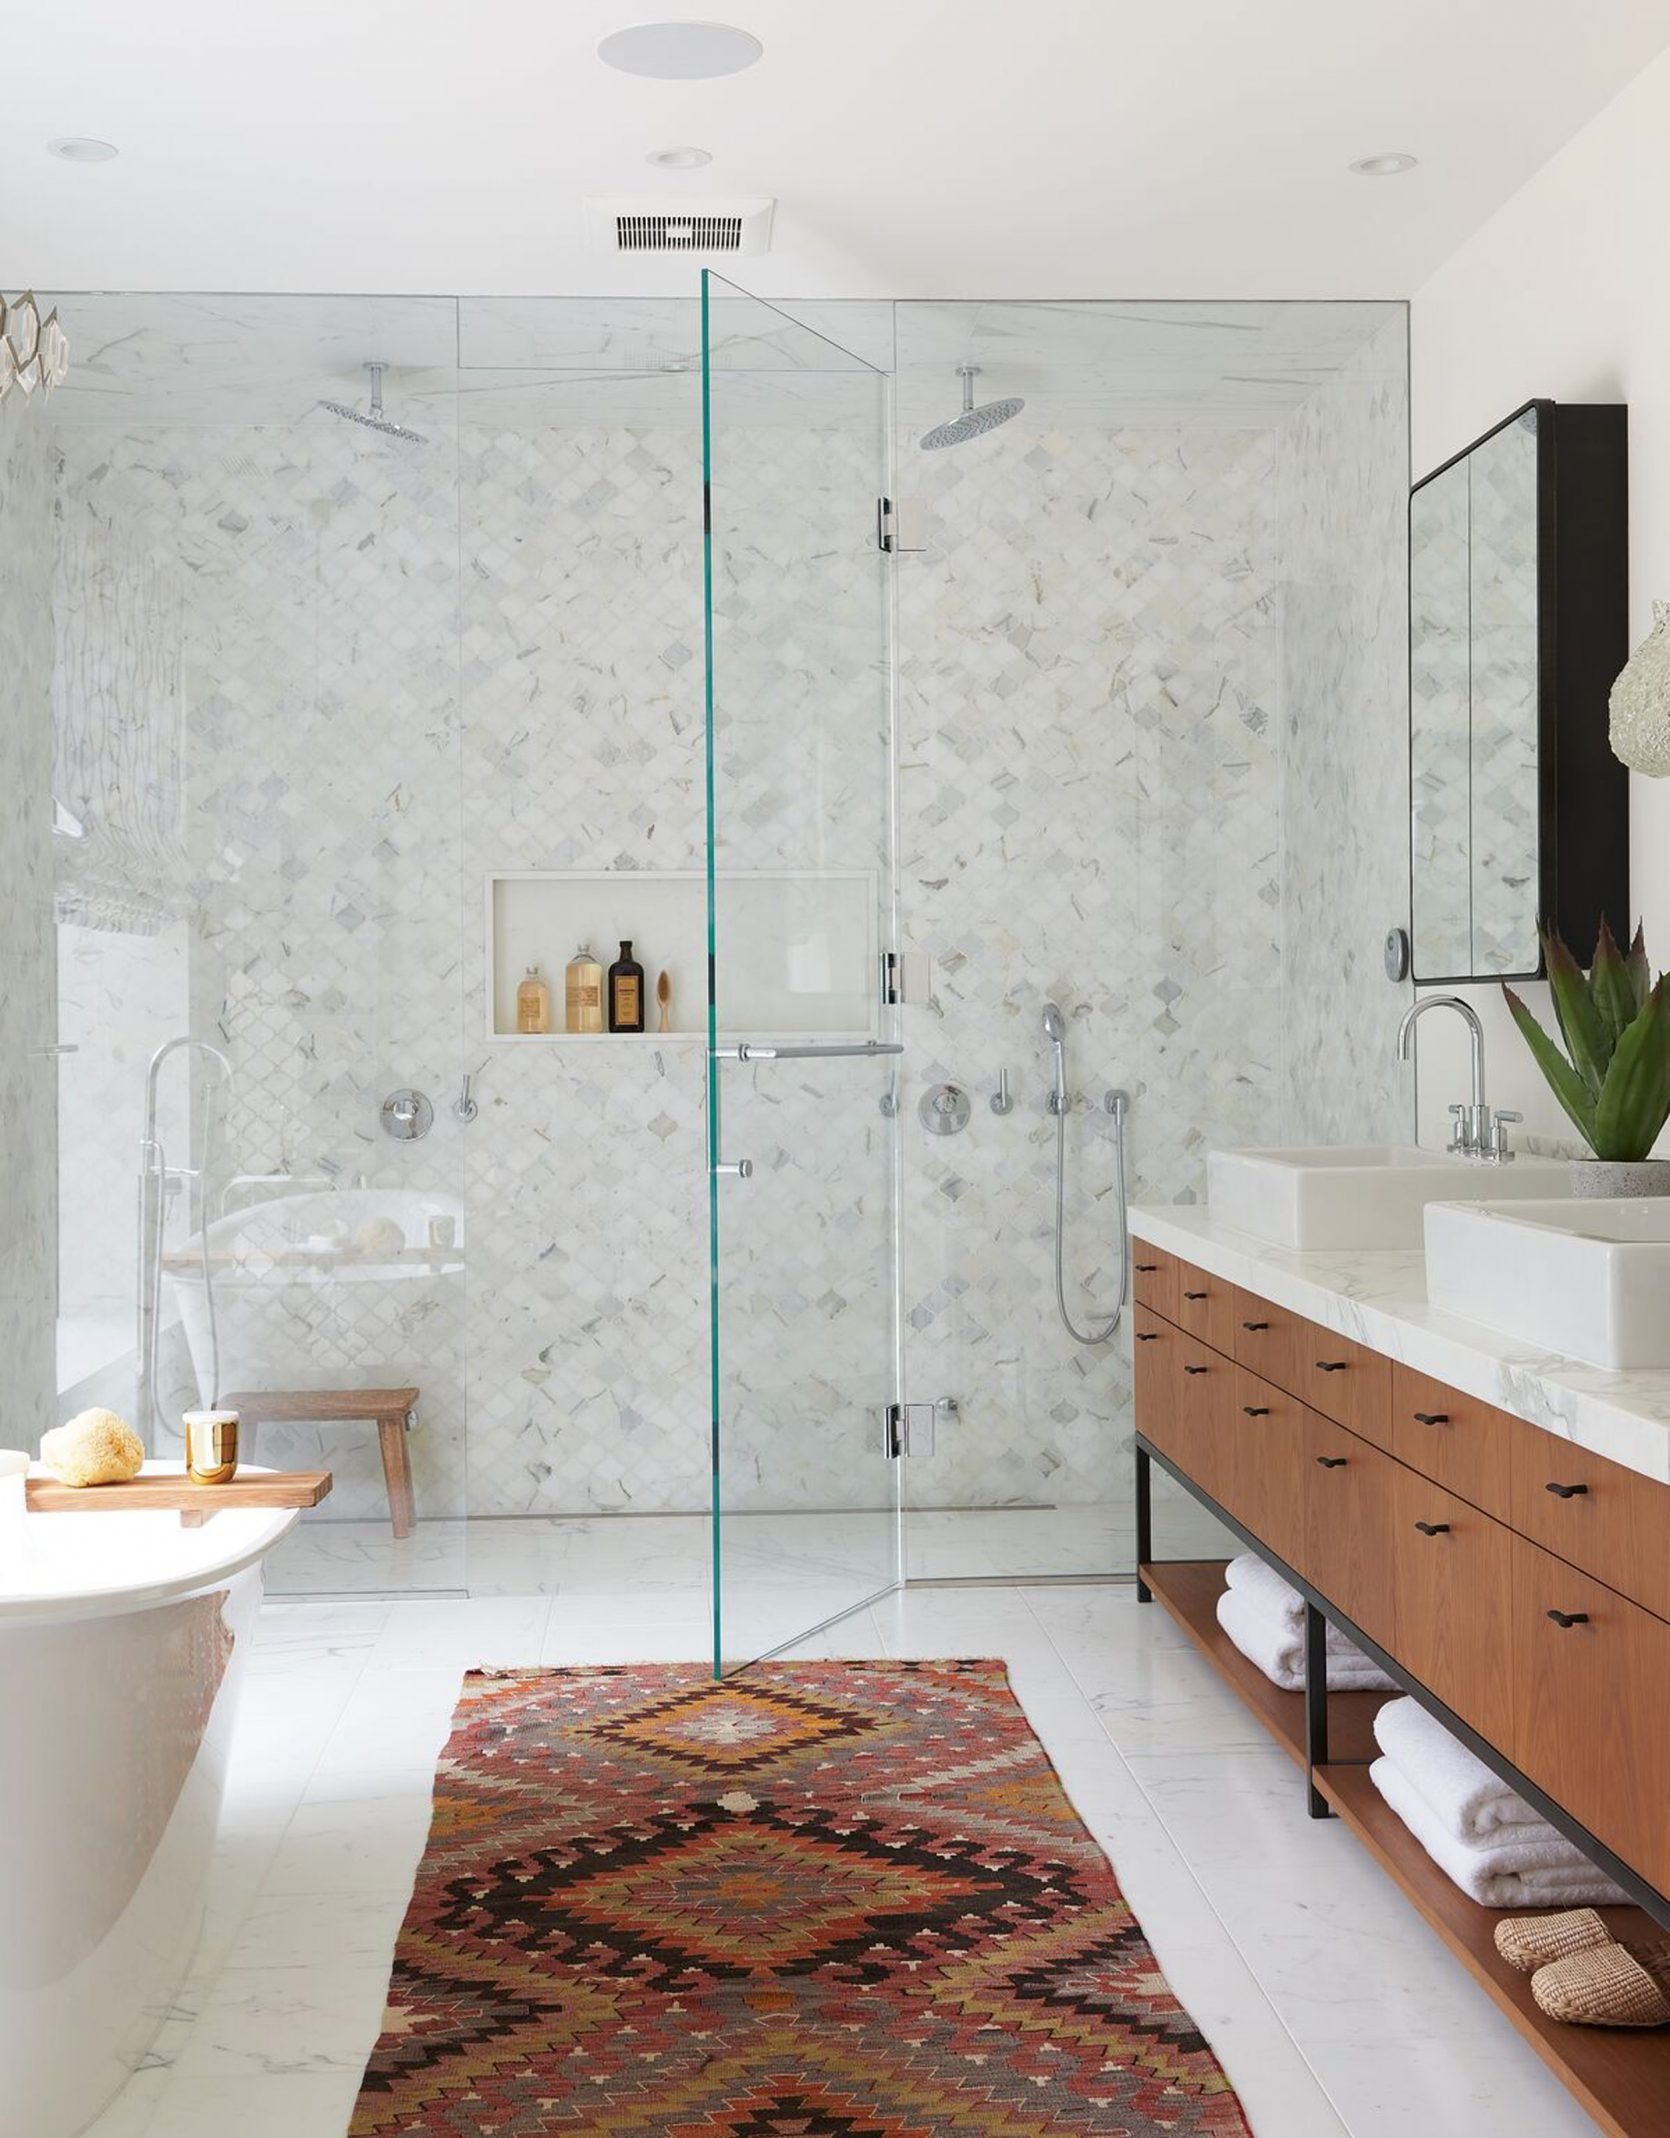 Home Design Ideas For 2019: 10 Of The Most Exciting Bathroom Design Trends For 2019